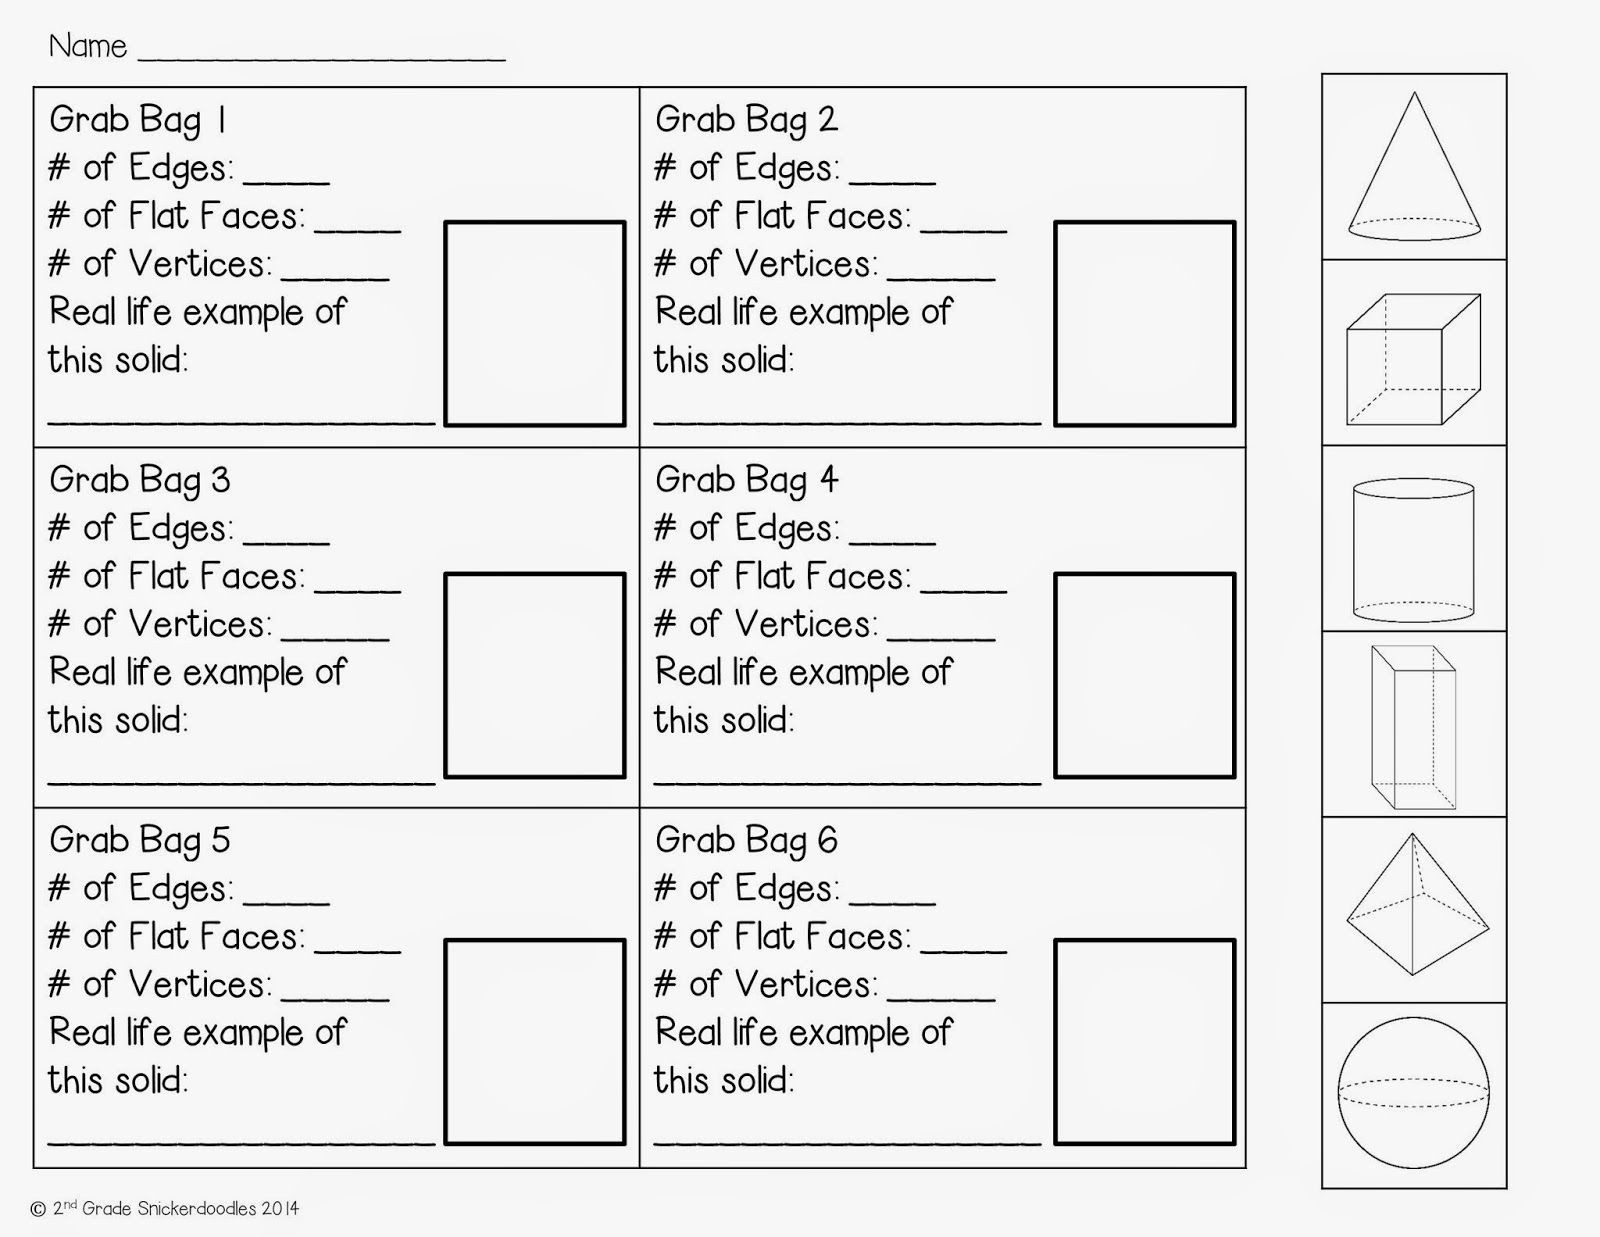 Second Grade Geometry Worksheets Geometric solids Grab Bag Activity